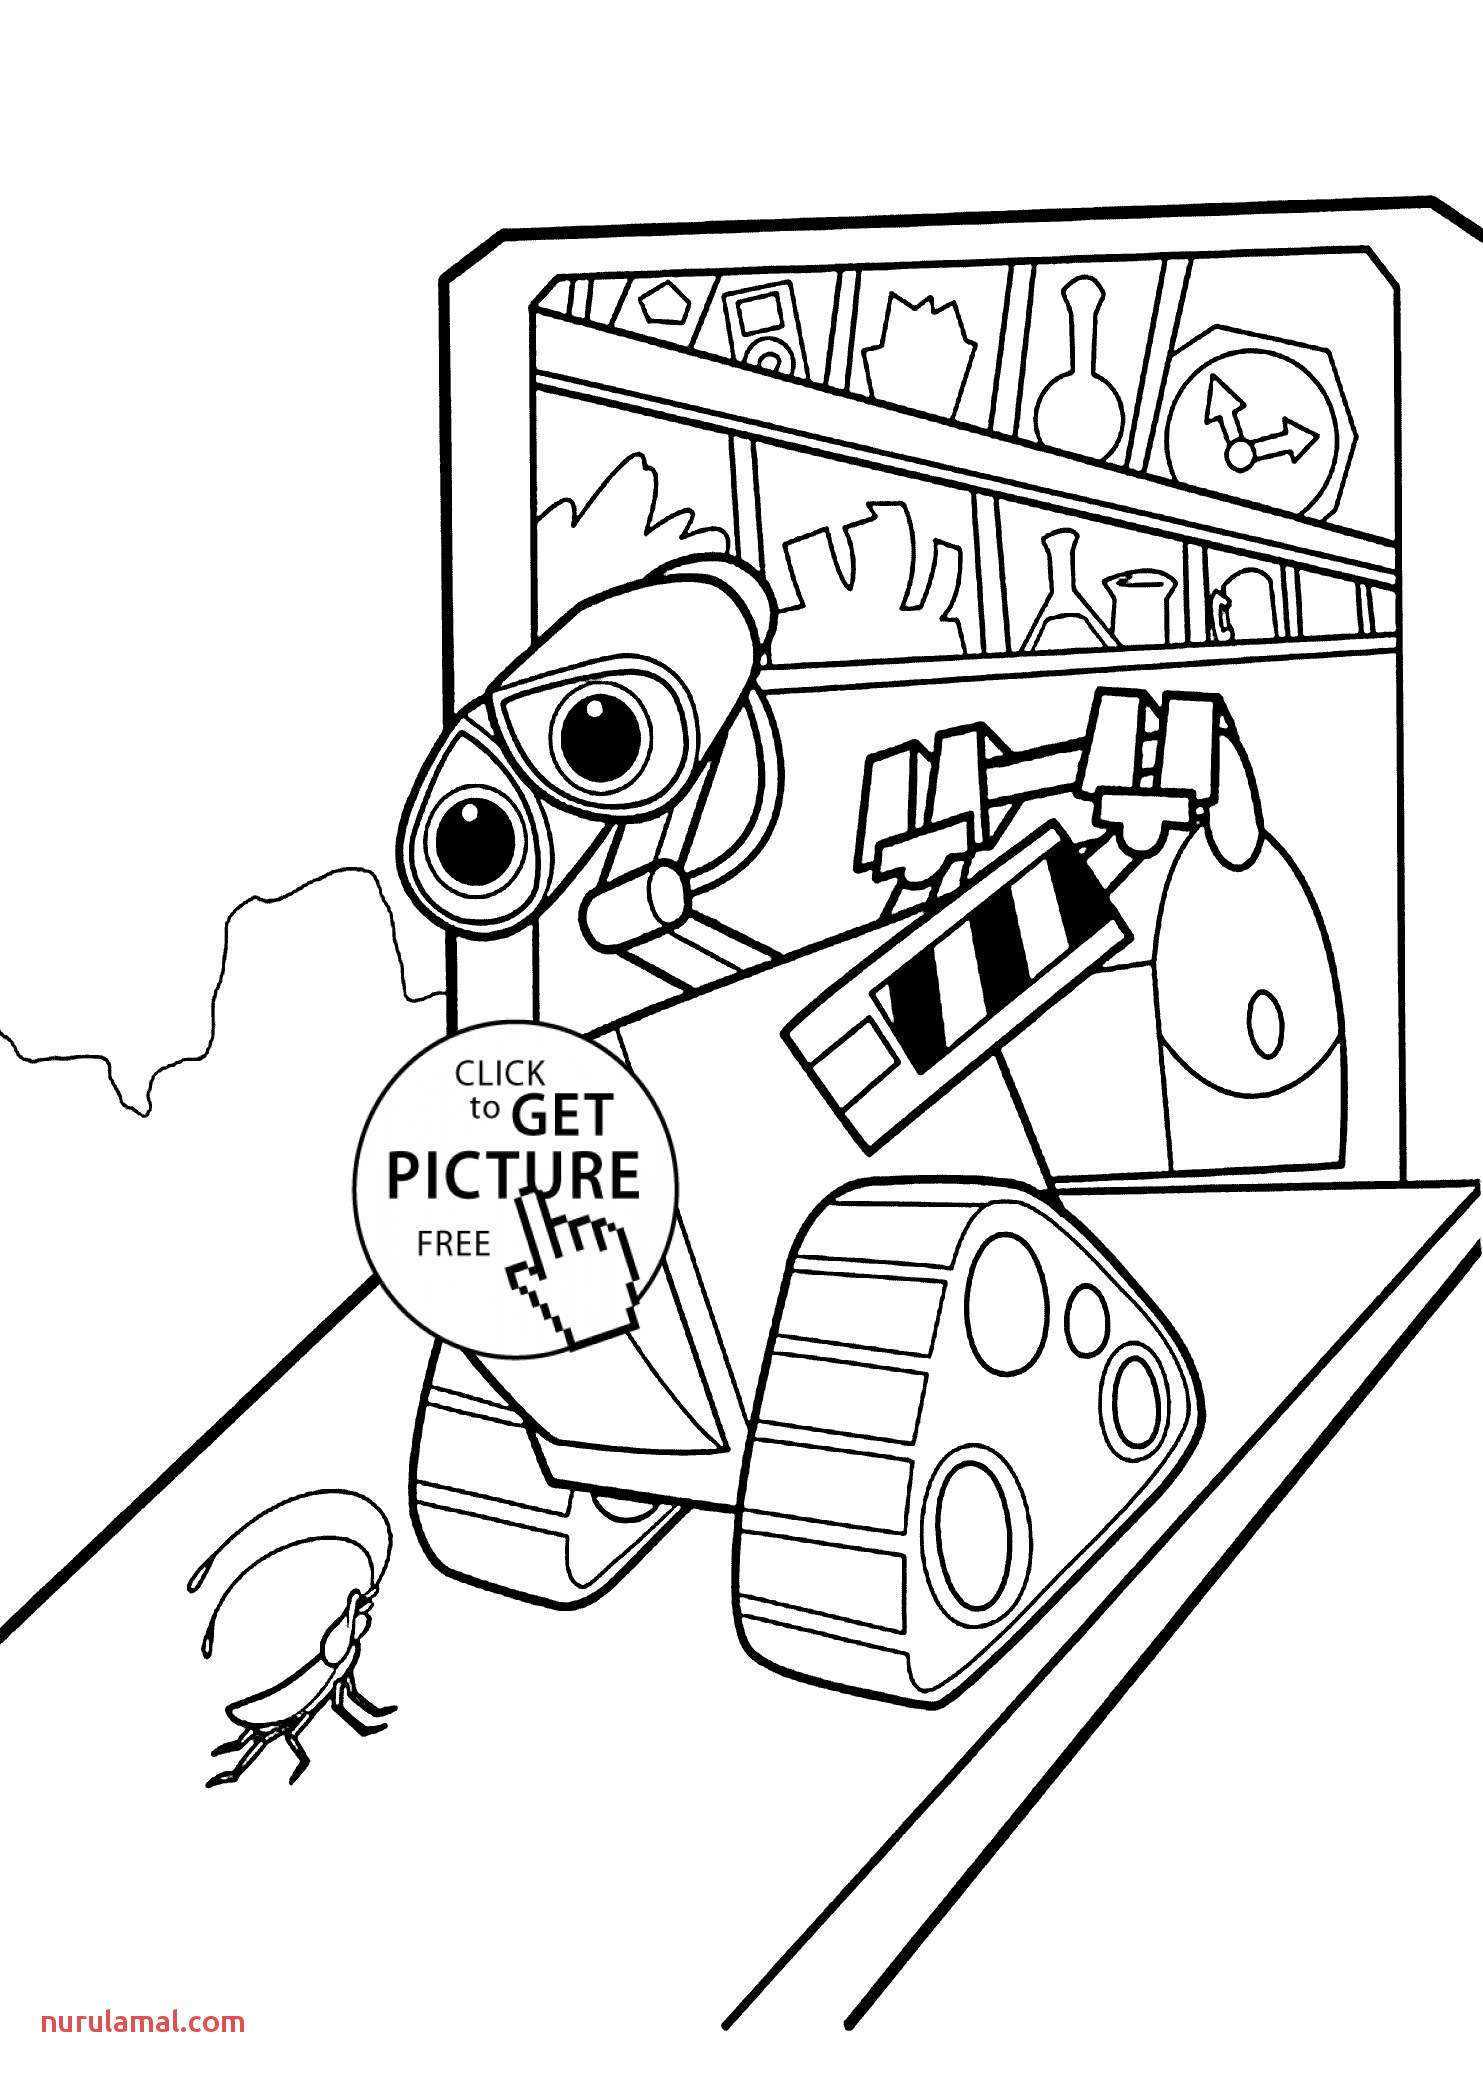 Wall E Home Coloring Pages for Kids Printable Free